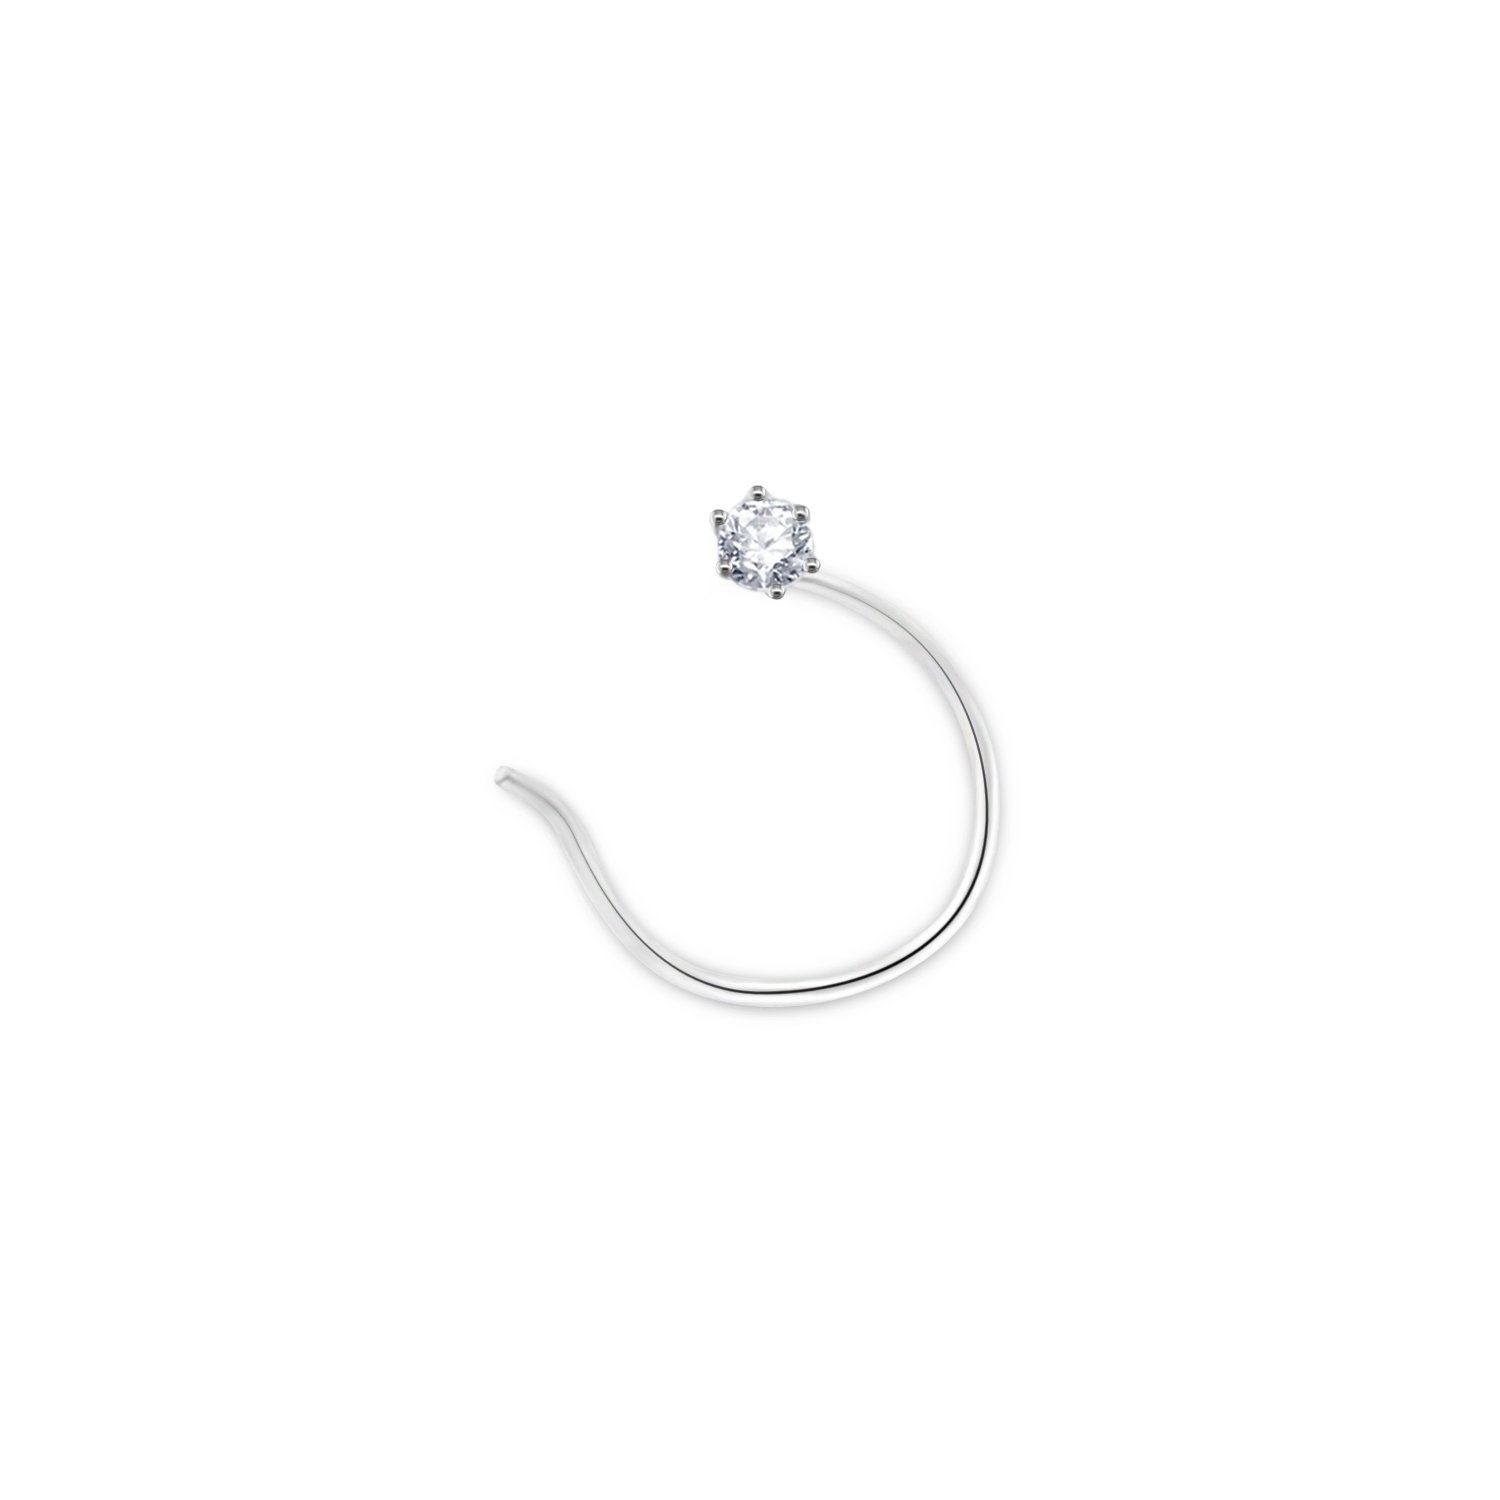 Panache Exports 2.40 mm 0.05 cttw Cubic Zirconia 18K Gold Nose Ring Twist Screw (white-gold)